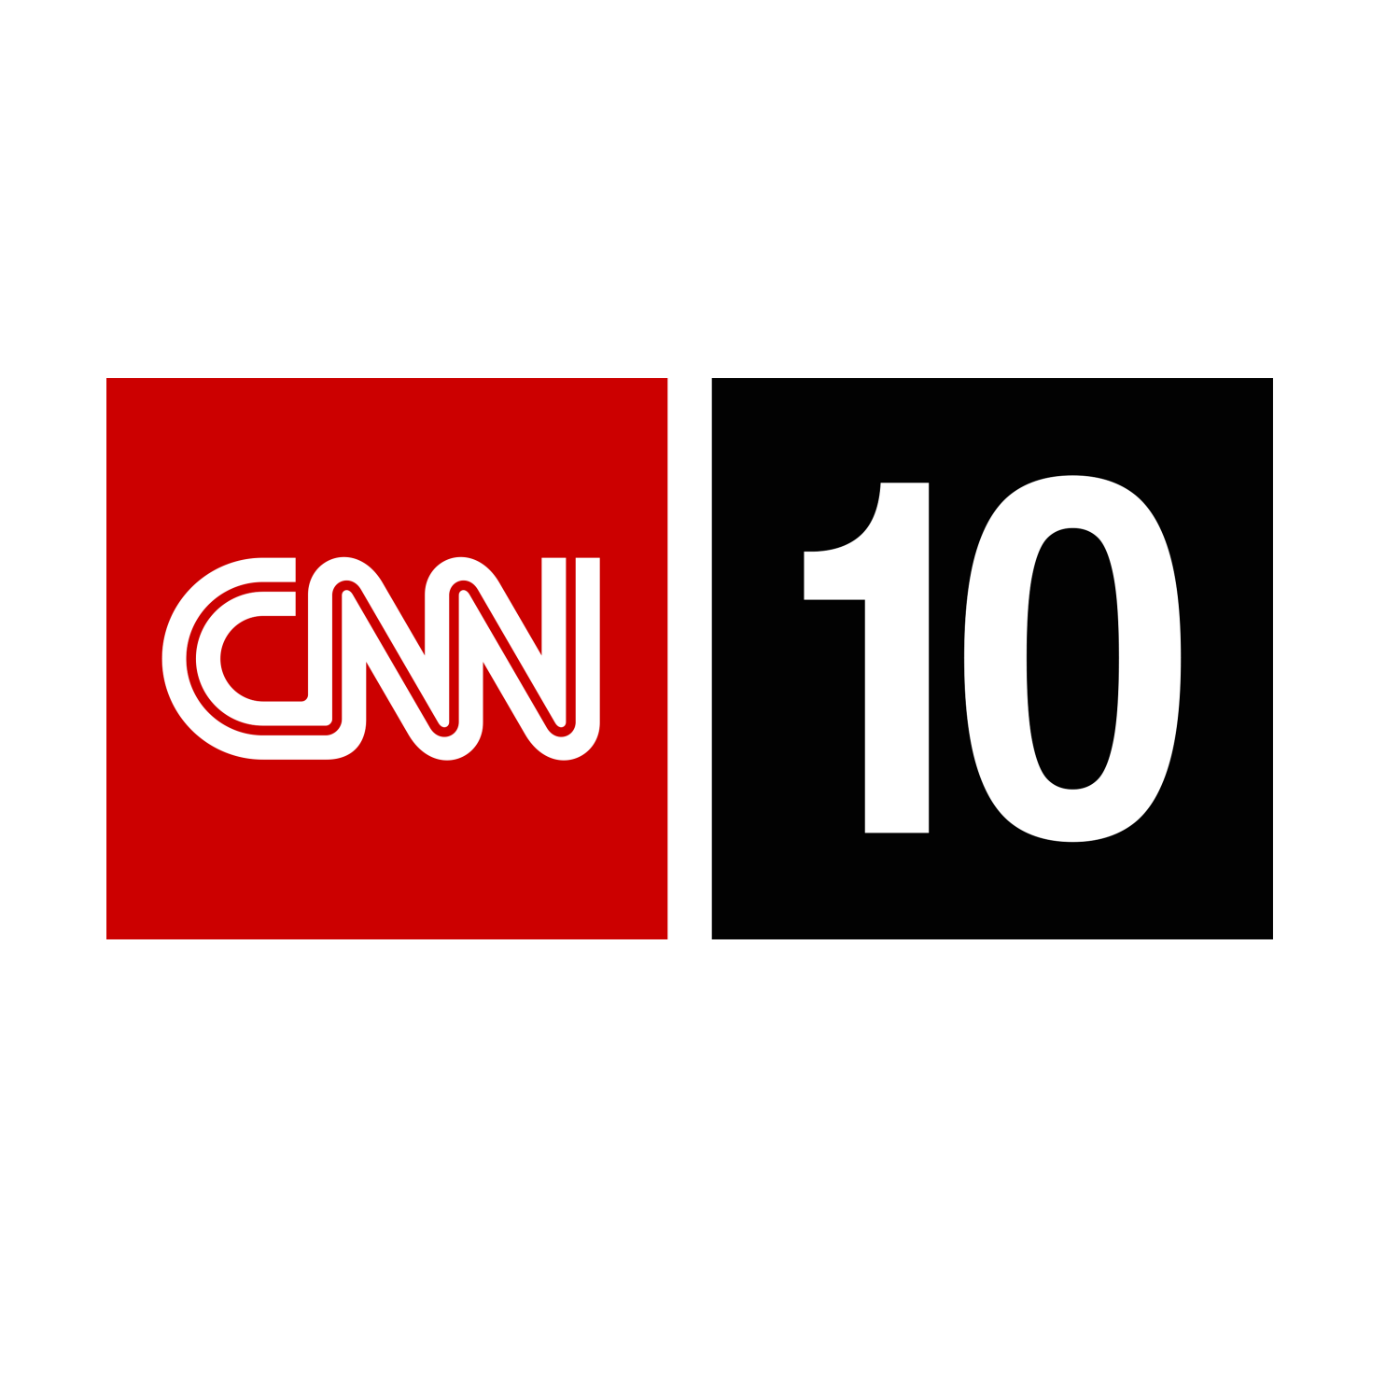 CNN Student News - January 8, 2013